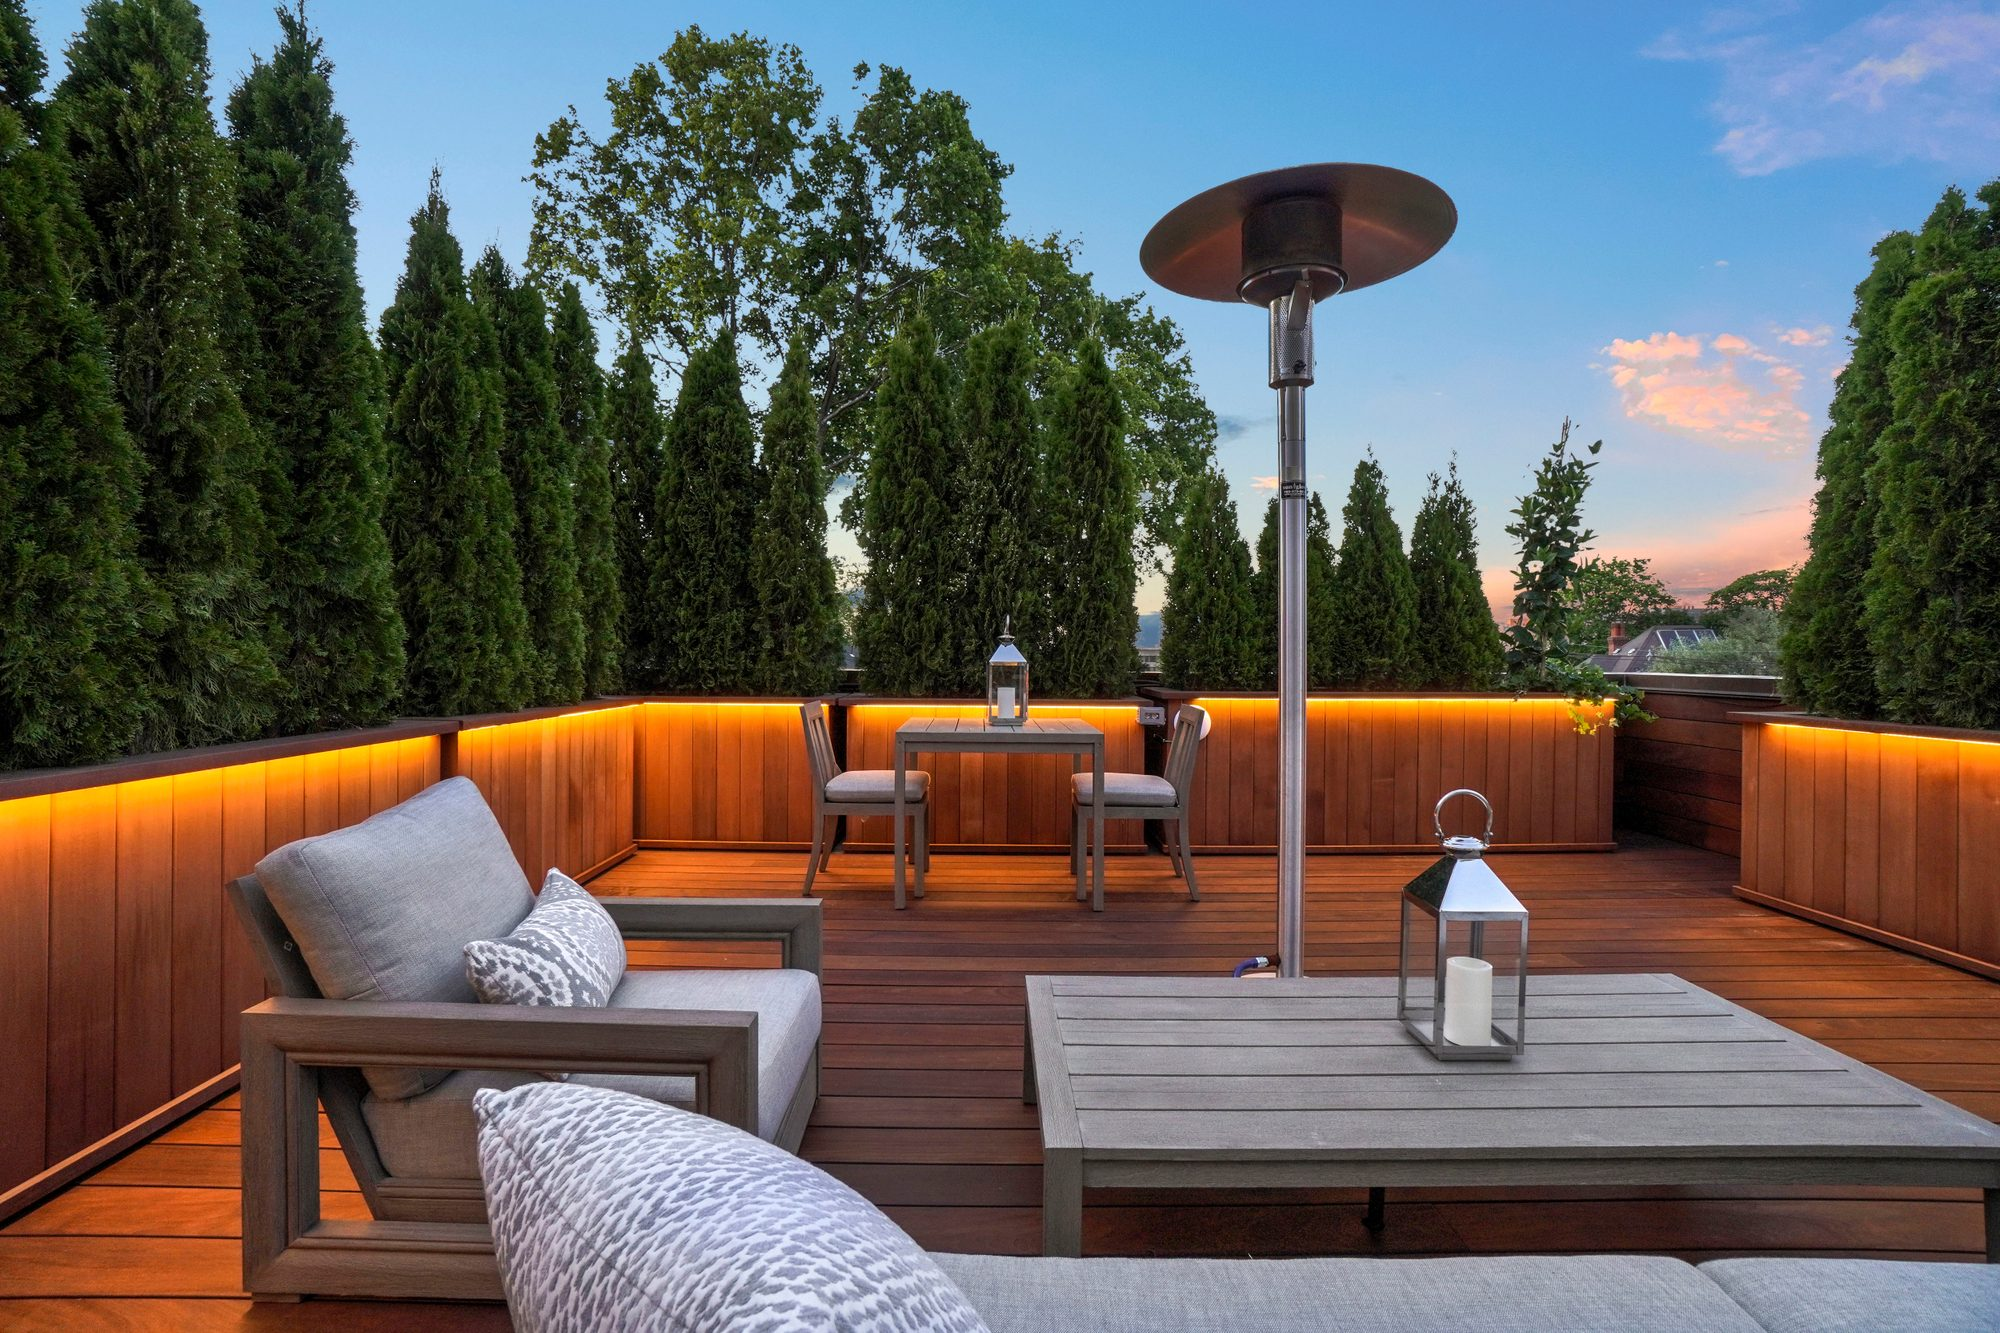 Rooftop deck with an outdoor patio set and indoor pillows.